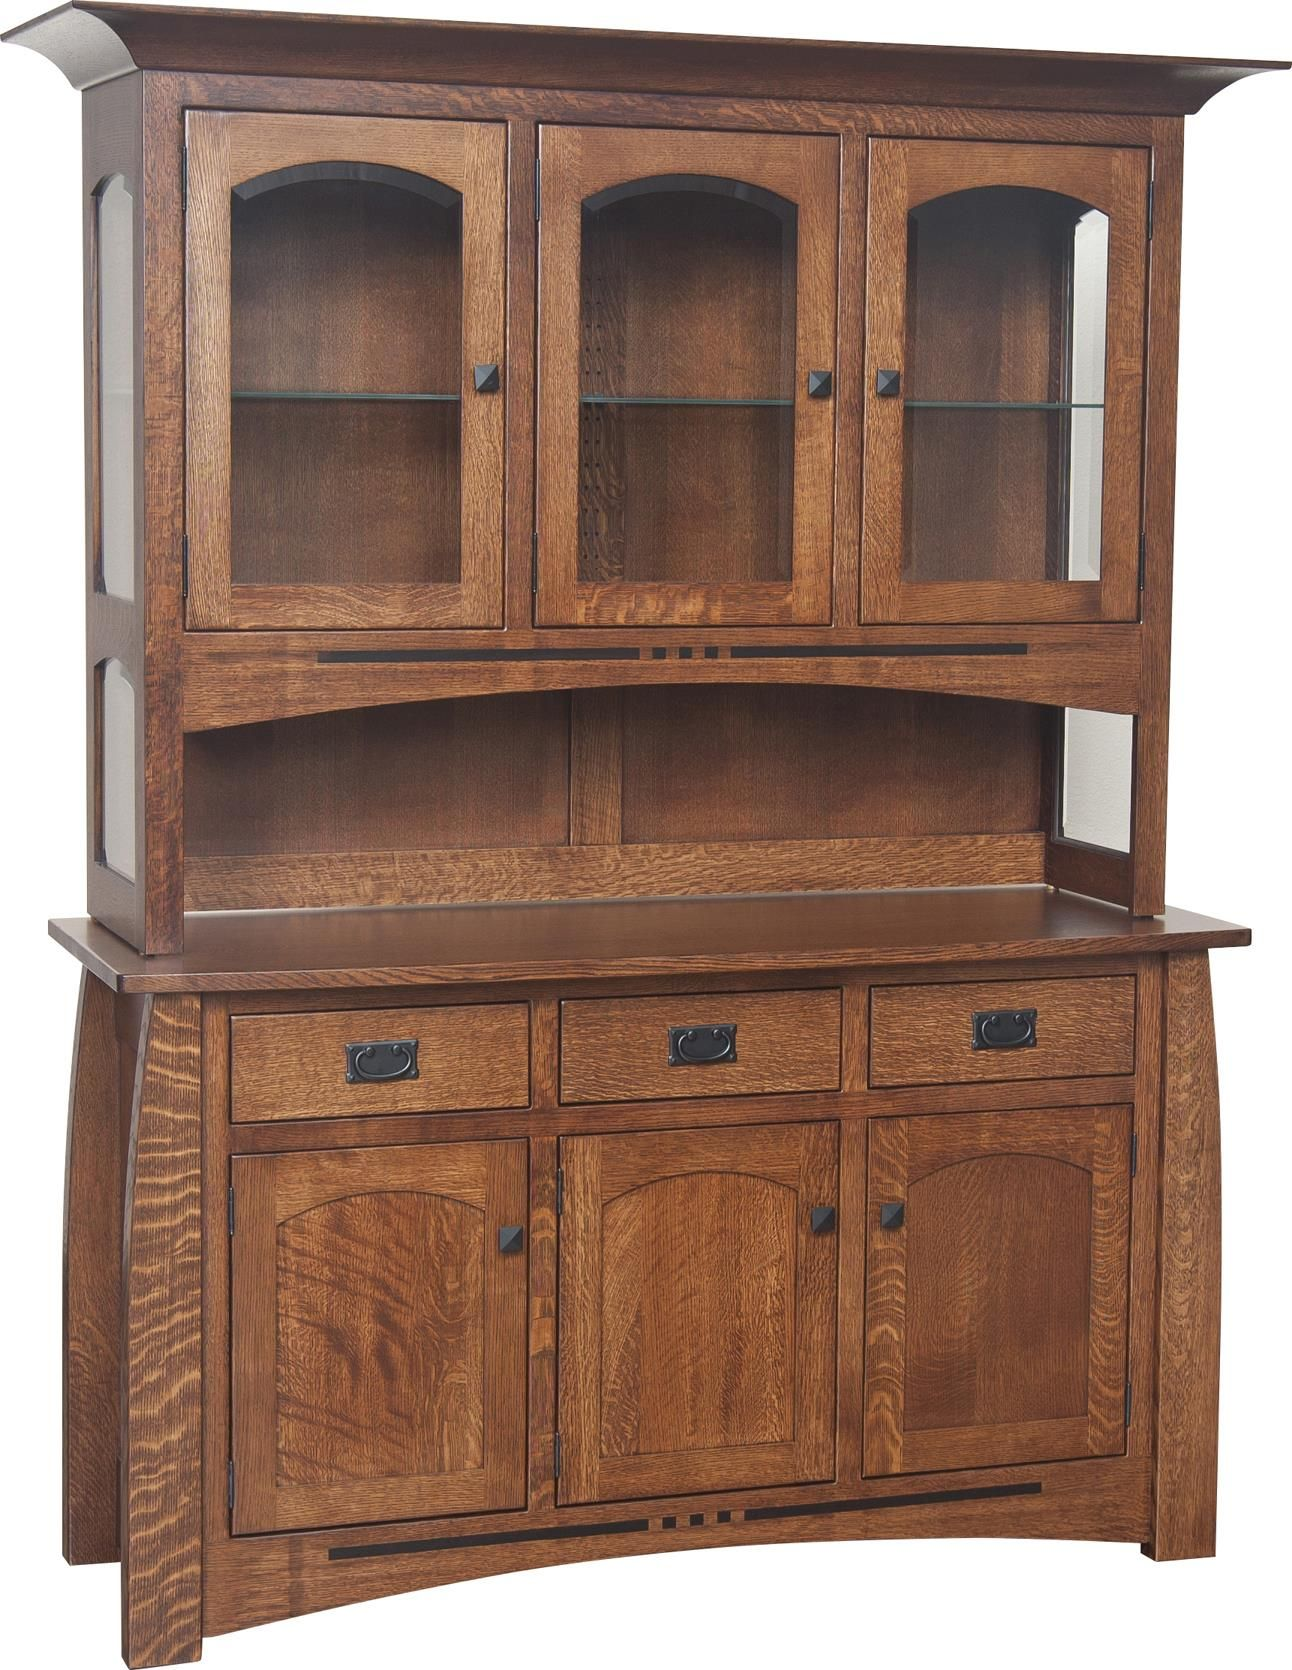 With Hutch By Amish Impressions Fusion Designs Available At Www Muellerfurniture Or In Mueller Furniture And Mattress St Louis